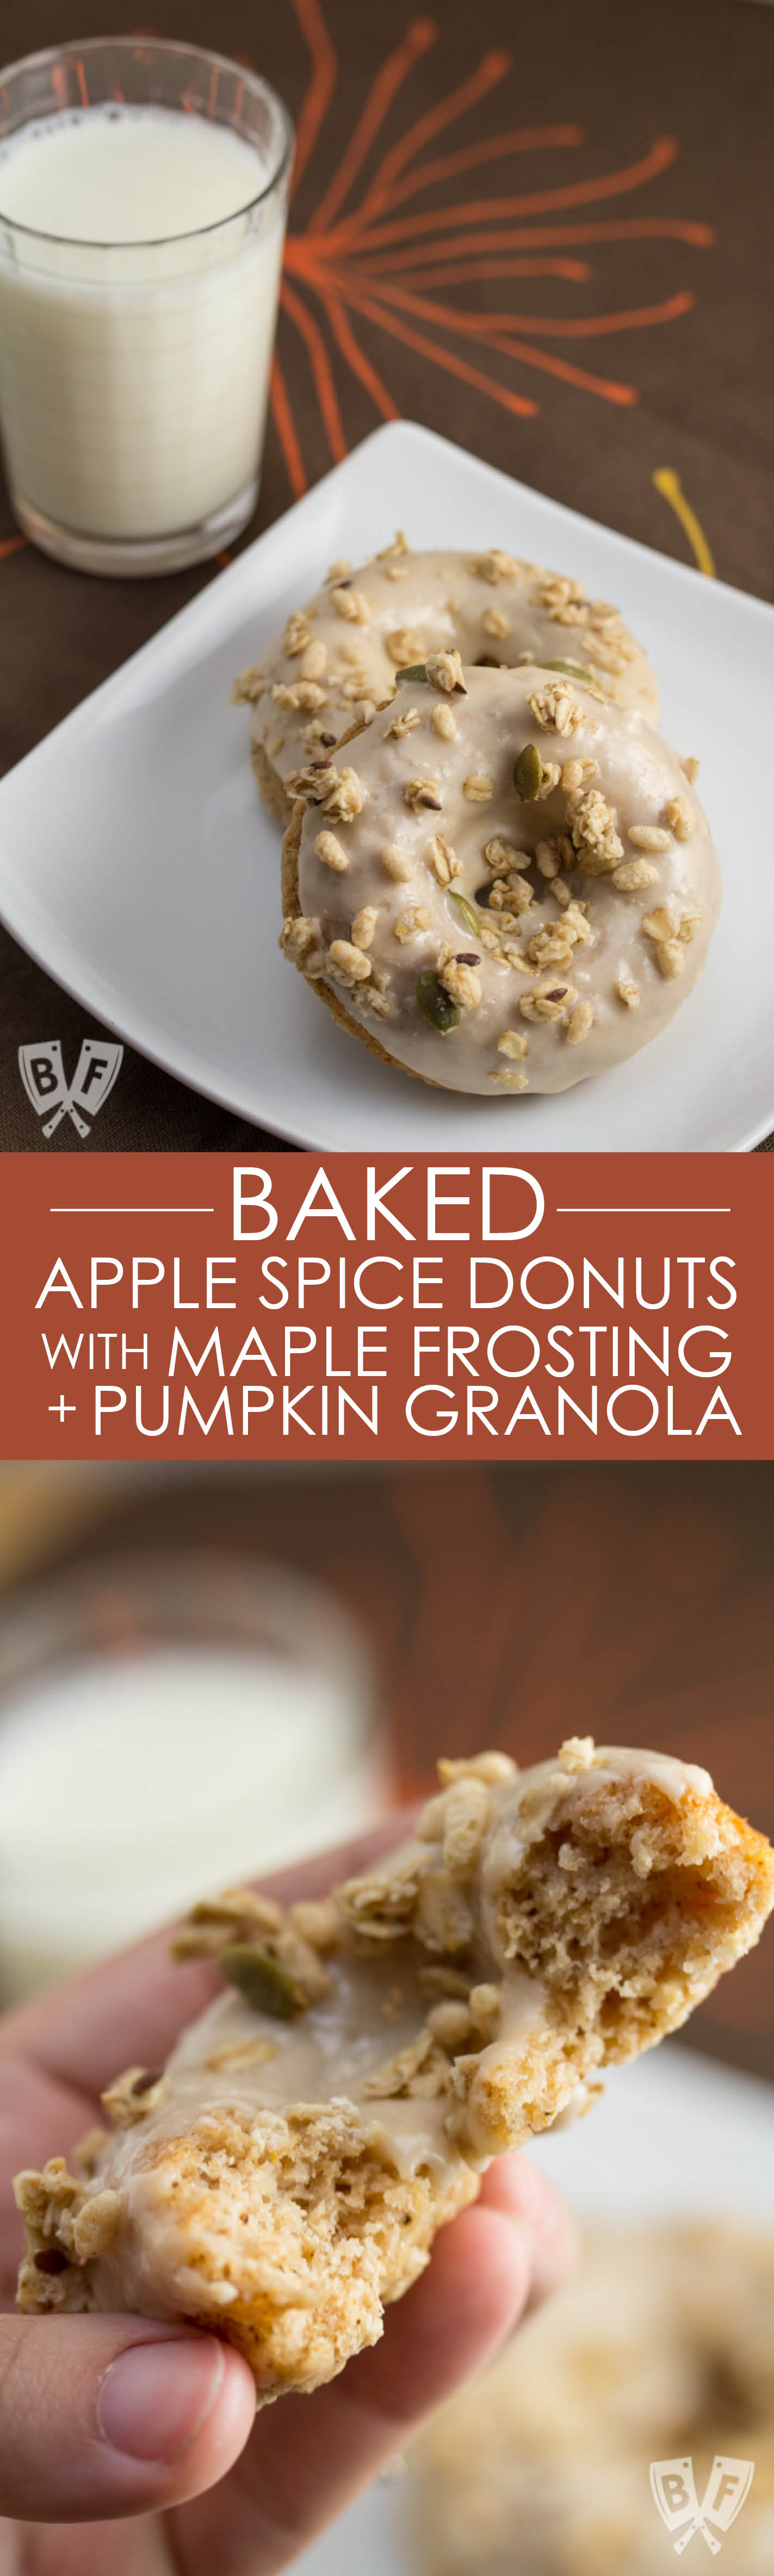 Baked Apple Spice Donuts with Maple Frosting and Pumpkin Granola (#ad): Crunchy granola is a perfect topping for these apple + Greek yogurt infused baked donuts. A great breakfast or dessert recipe to use your fall apple bounty! #StonyfieldBlogger